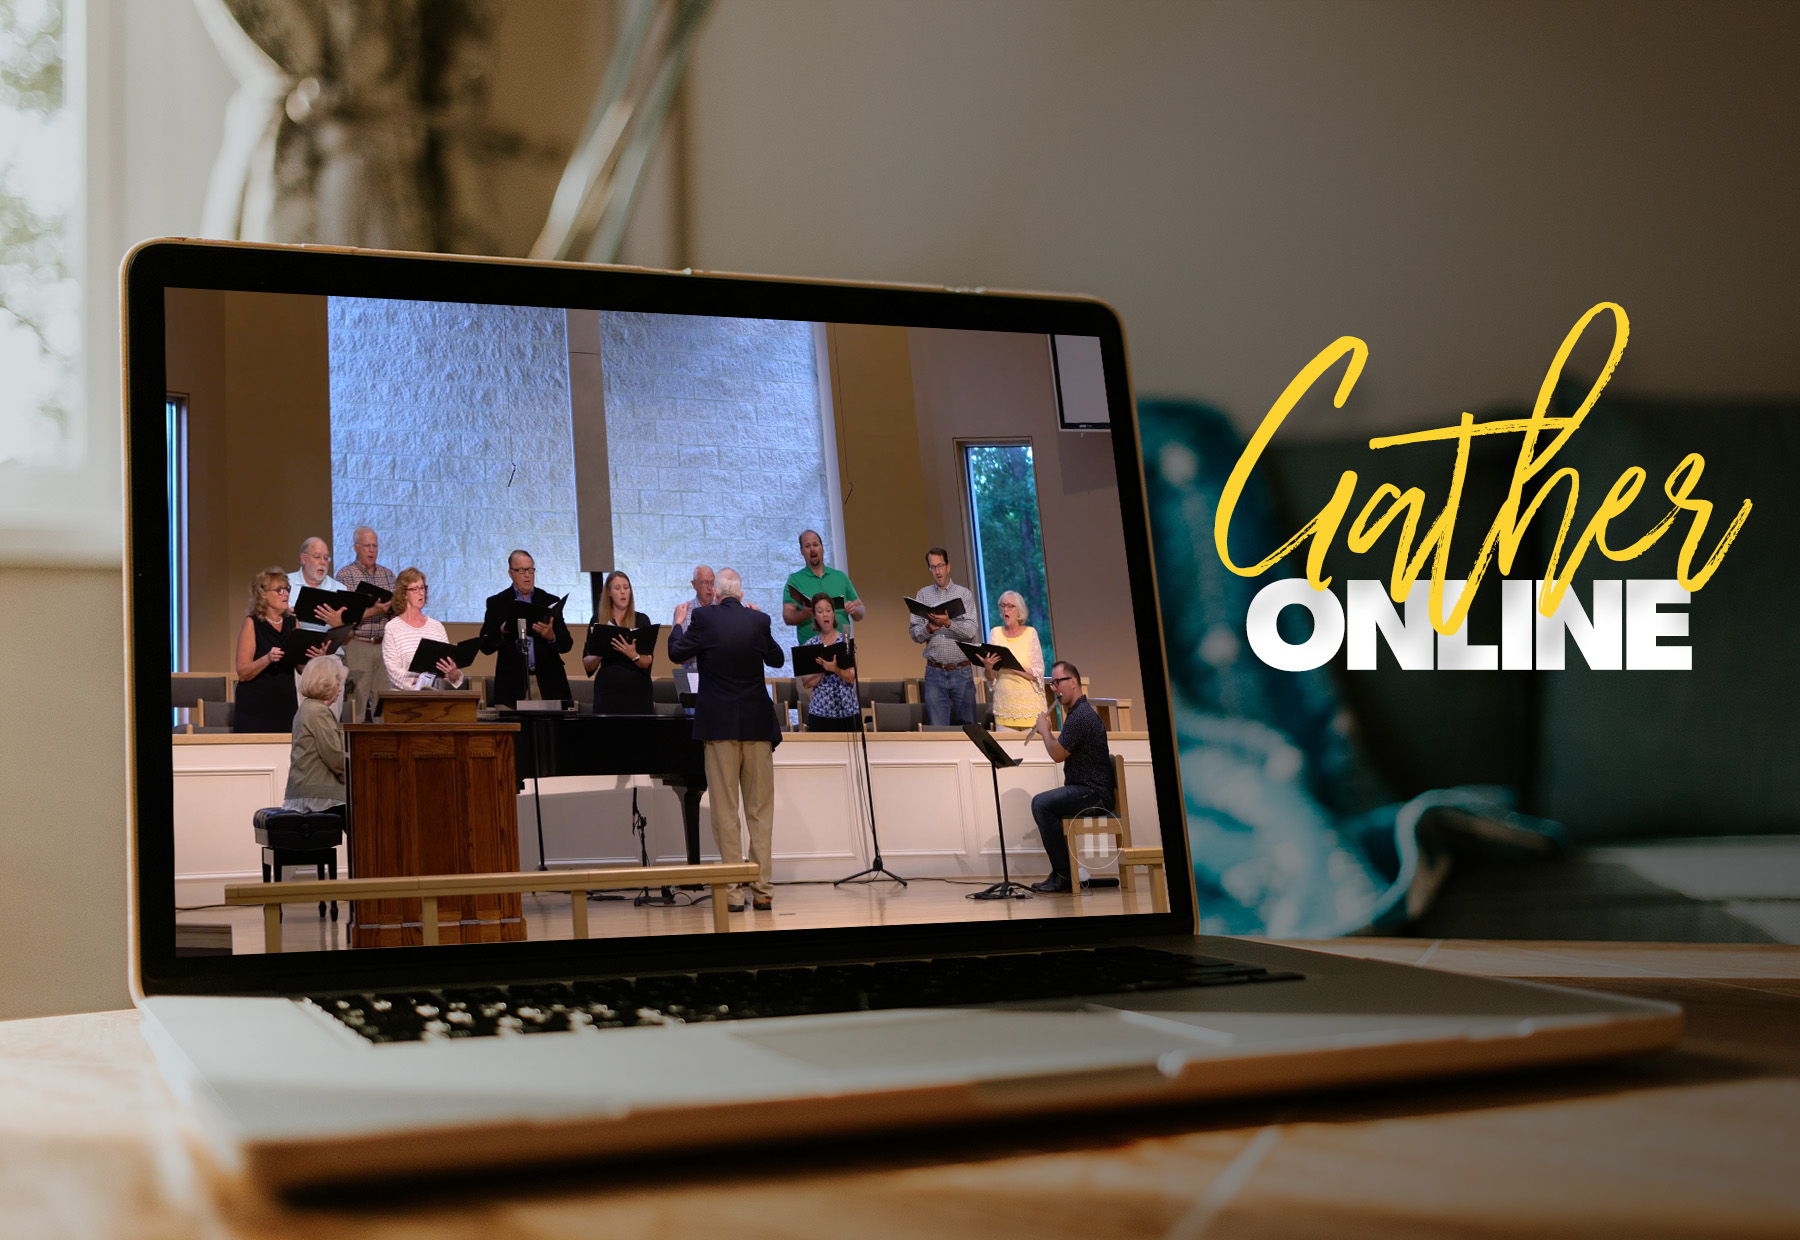 Christ Church Birmingham Online Traditional Worship | July 26, 2020